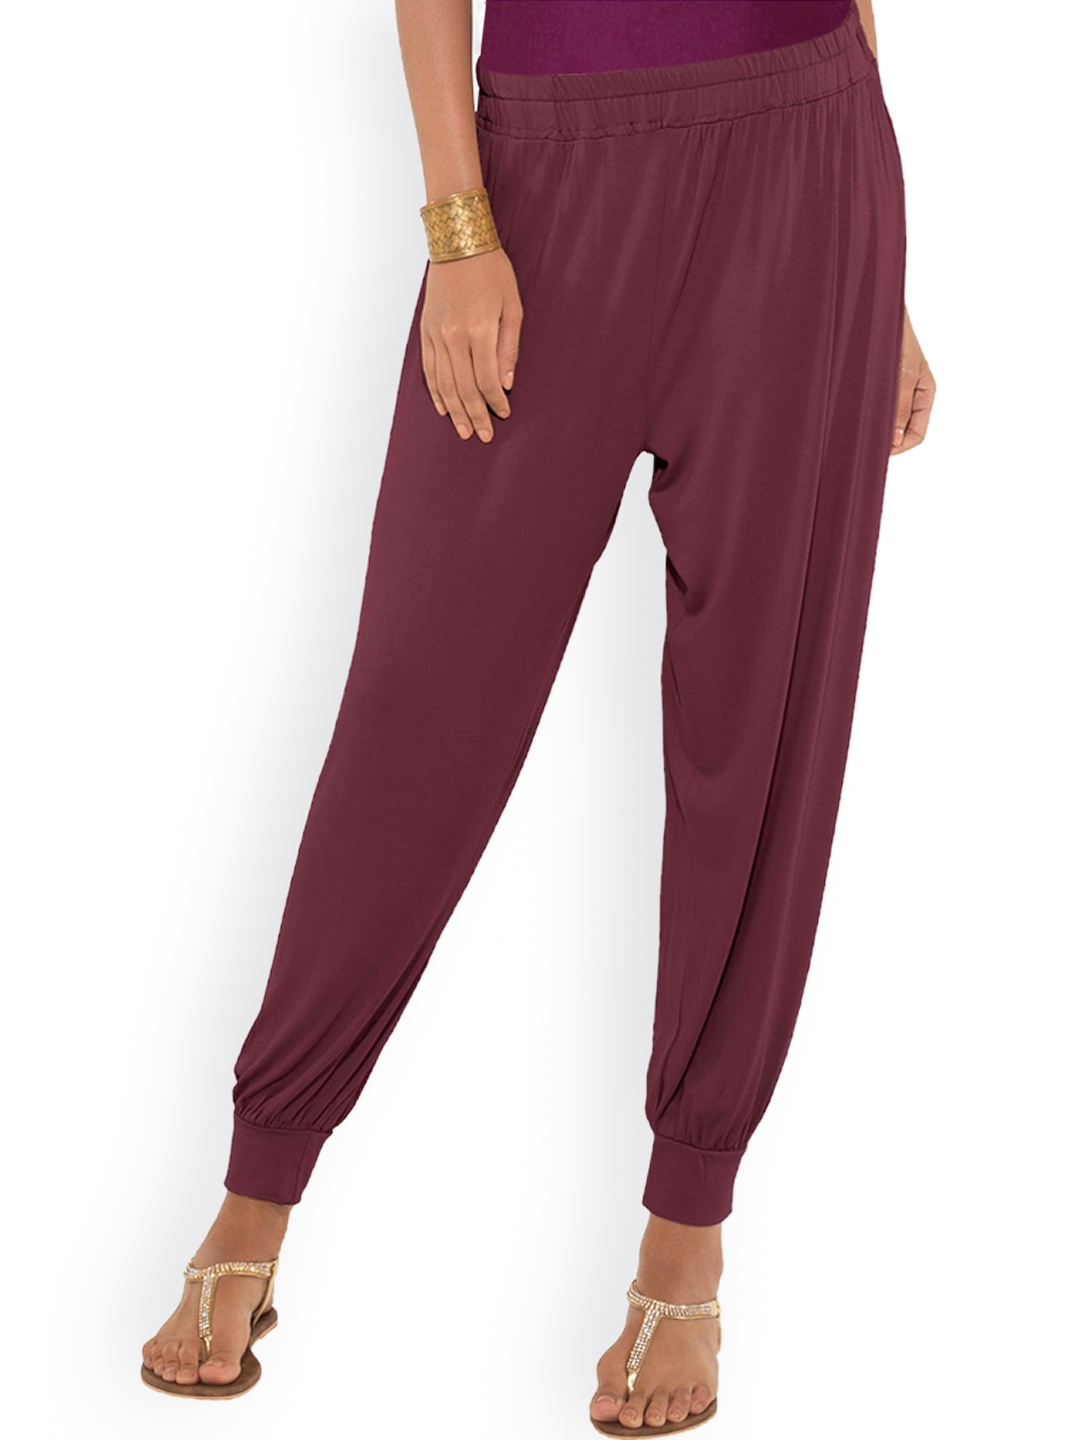 Buy Go Colors Burgundy Cotton Viscose Harem Pants Harem Pants